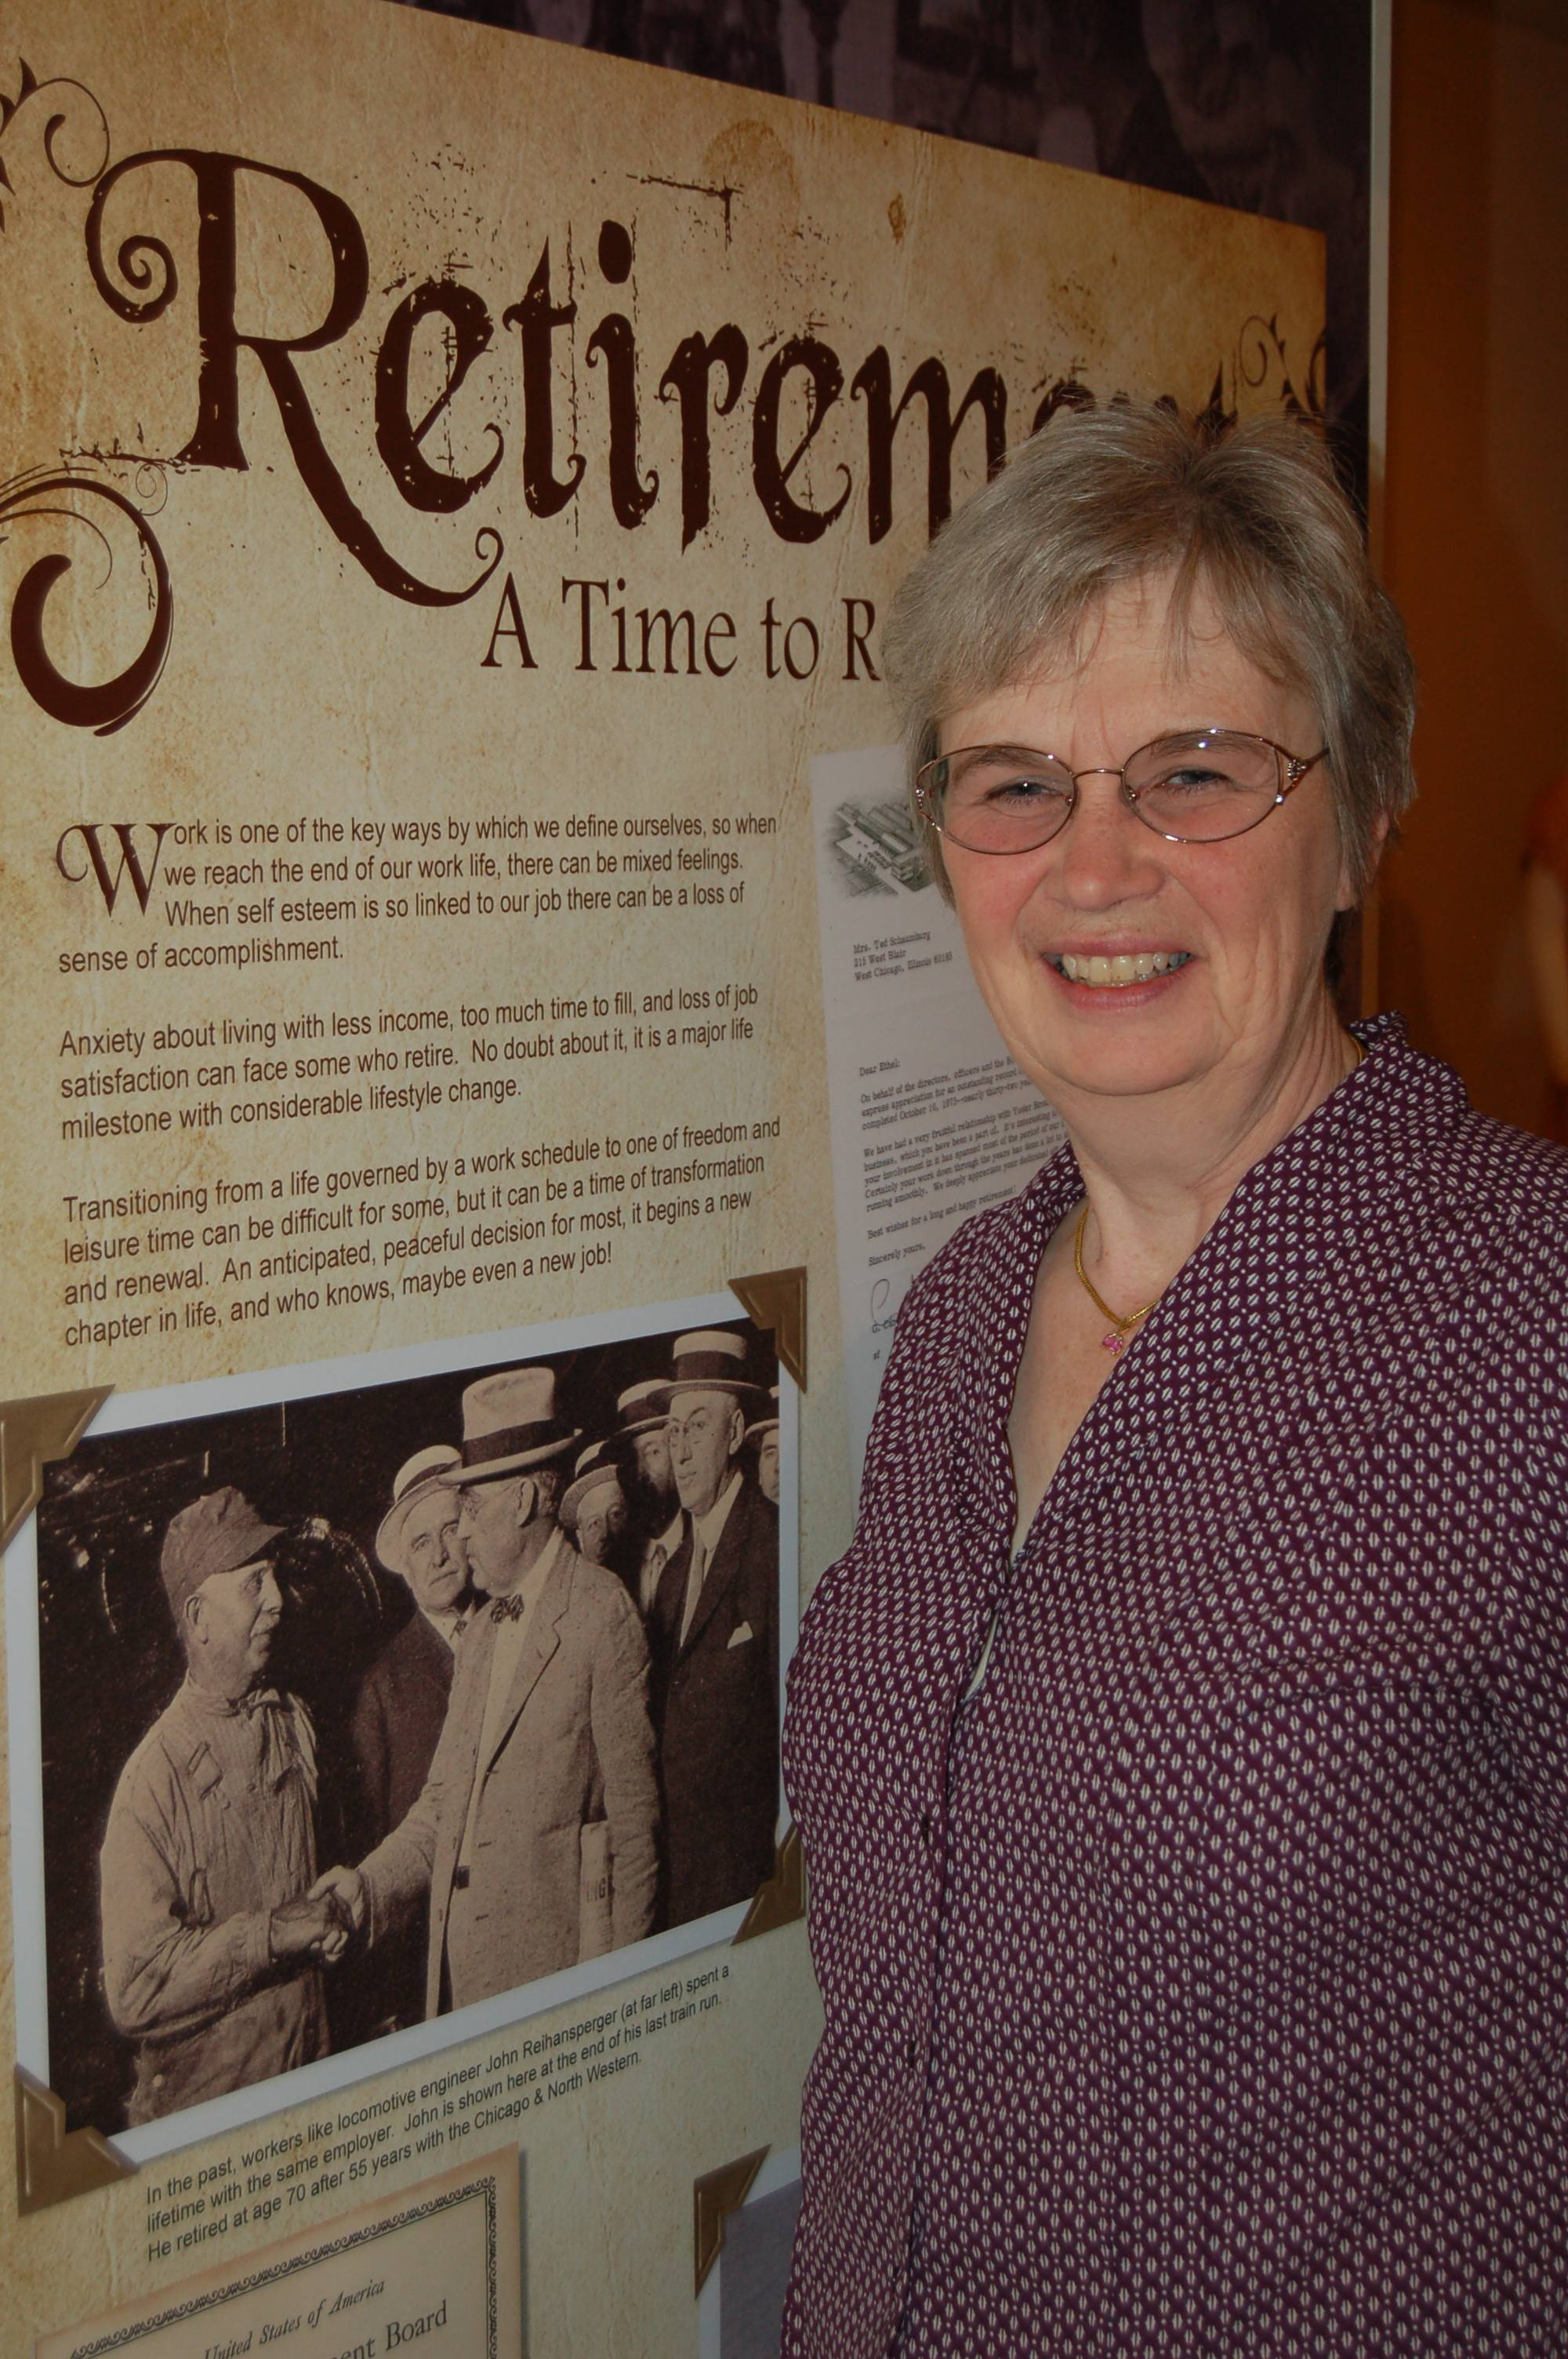 Aptly positioned in front of an exhibit (Rites of Passage) panel depicting retirement, LuAnn Bombard approaches a milestone in her own life - retirement from a 26-year career at the City of West Chicago.